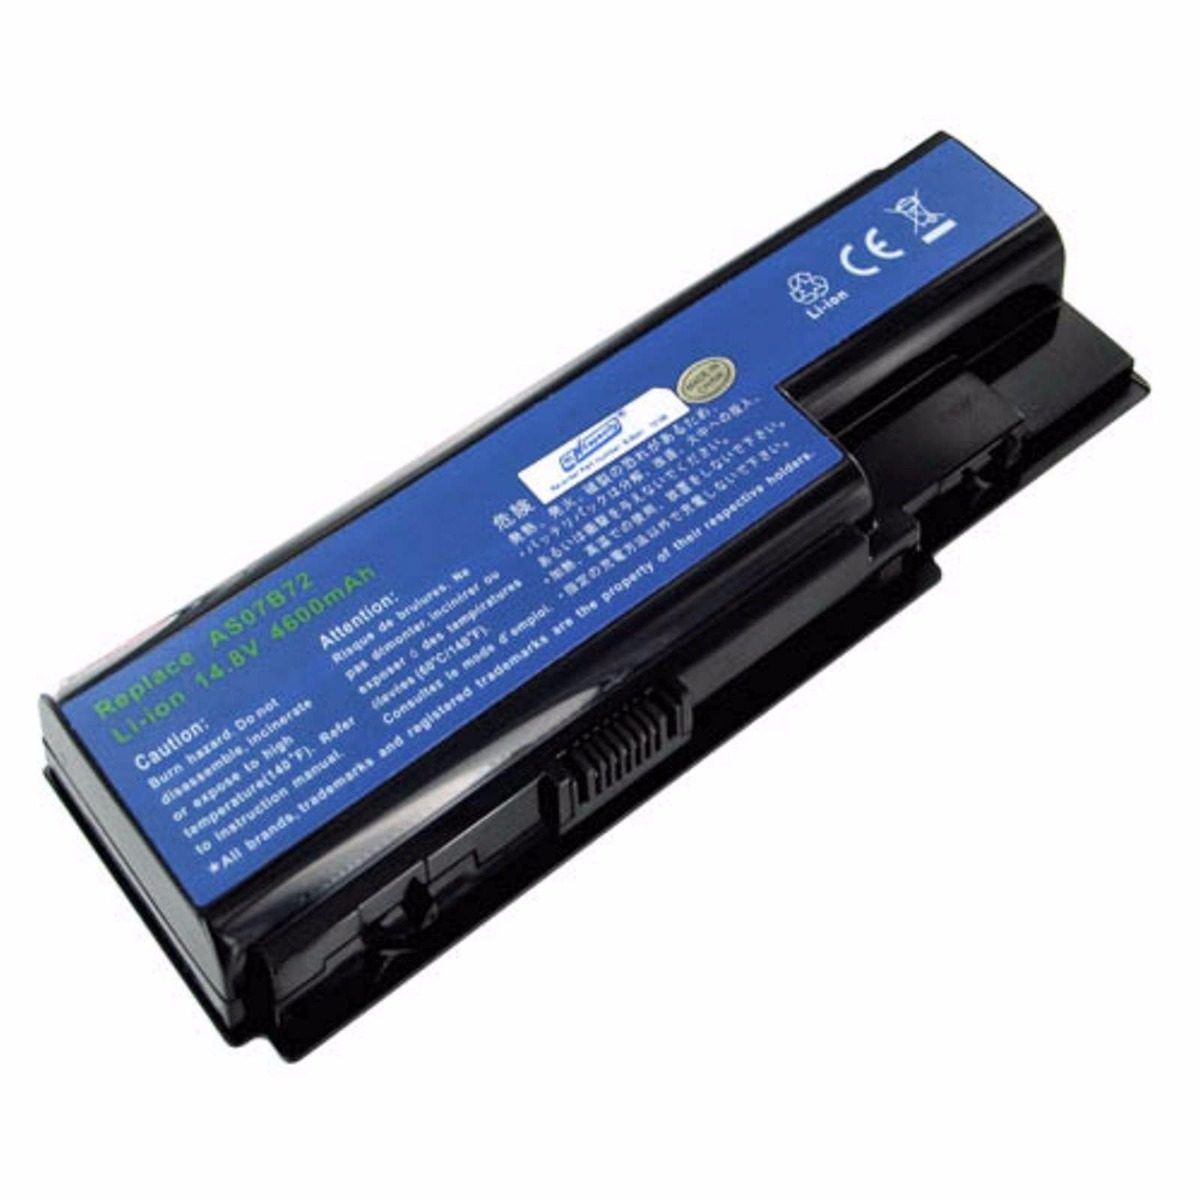 Acer Aspire 5220 Drivers for Windows 7